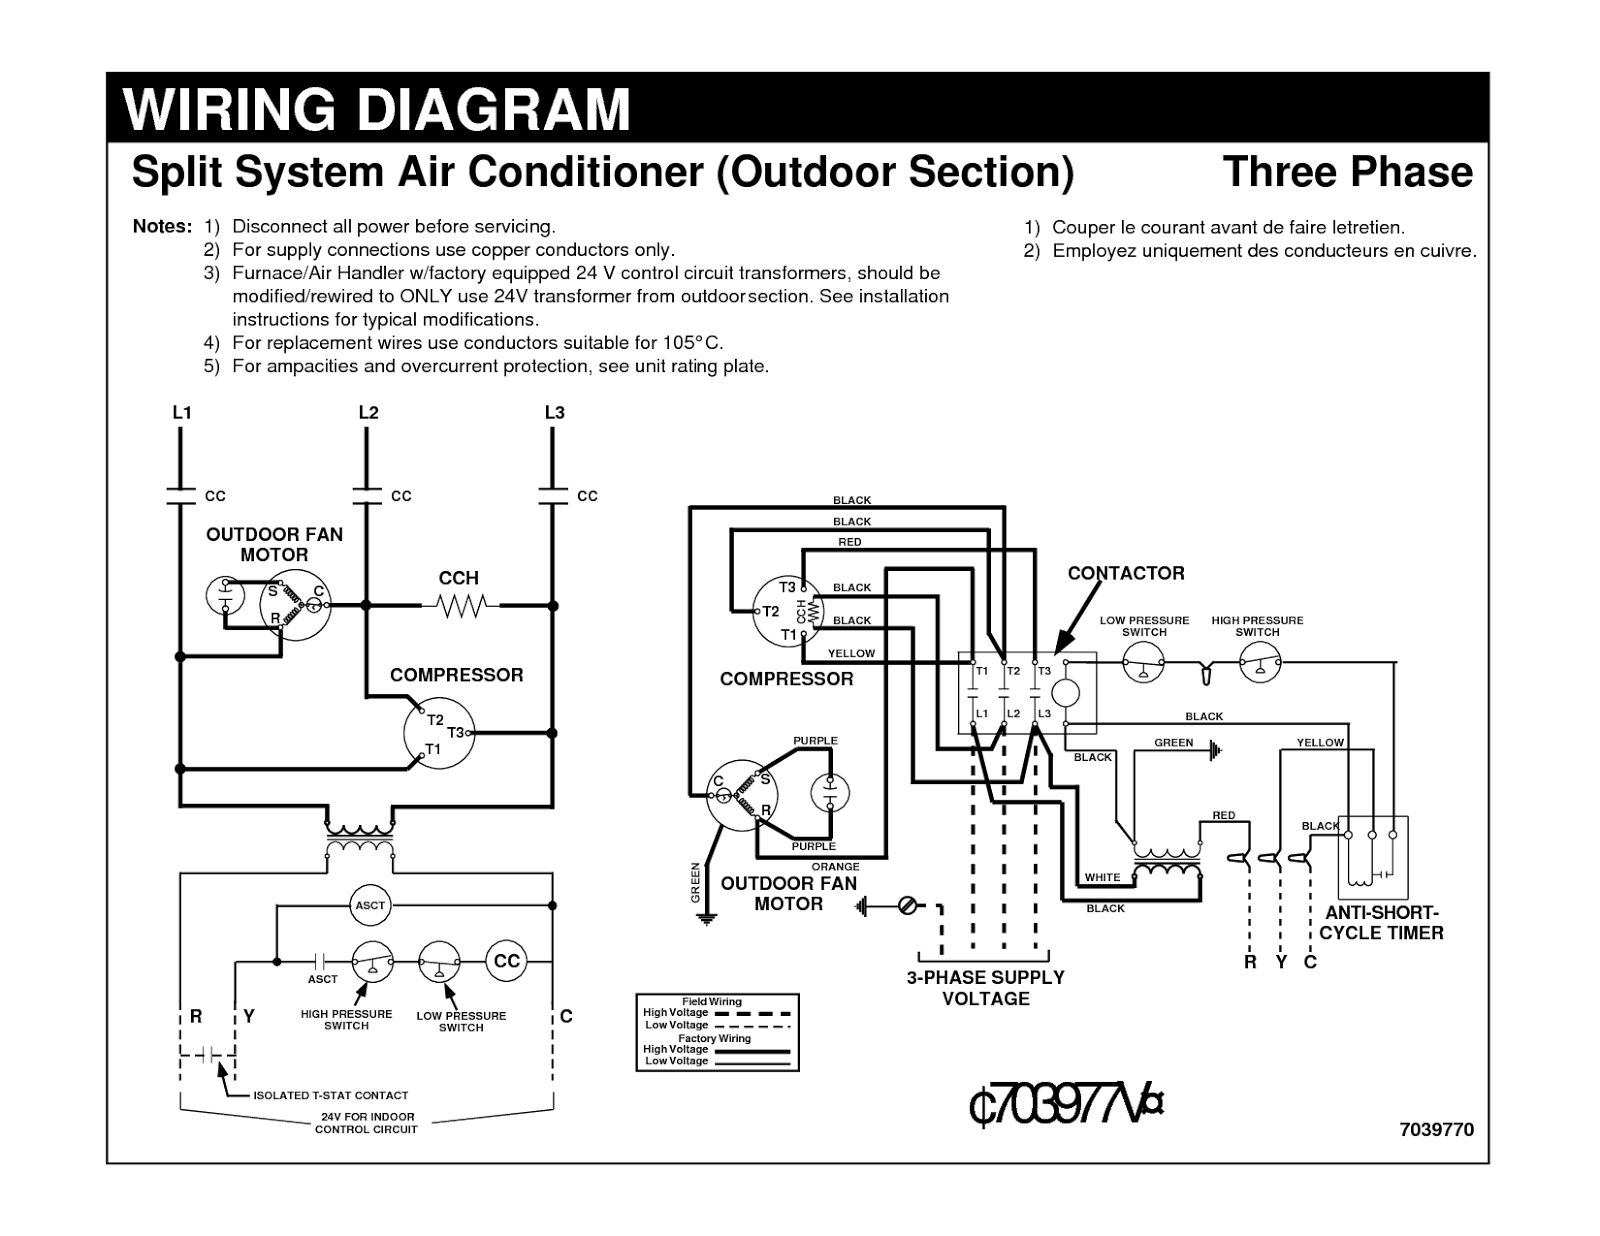 Ac Home Wiring - Electrical Wiring Diagram Guide  Phase Electric Heater Wiring Diagram on 3 phase wiring diagram wires, 3 phase breaker panel wiring, 3 phase motor wiring diagram, 3 phase single phase transformer wiring, 3 phase oven wiring diagram, 3 phase to single phase wiring diagram, 3 phase lighting wiring diagram, 3 phase delta wiring diagram, 3 phase heating element connections, 3 phase electrical wiring diagram, 120 208 3 phase wiring diagram,